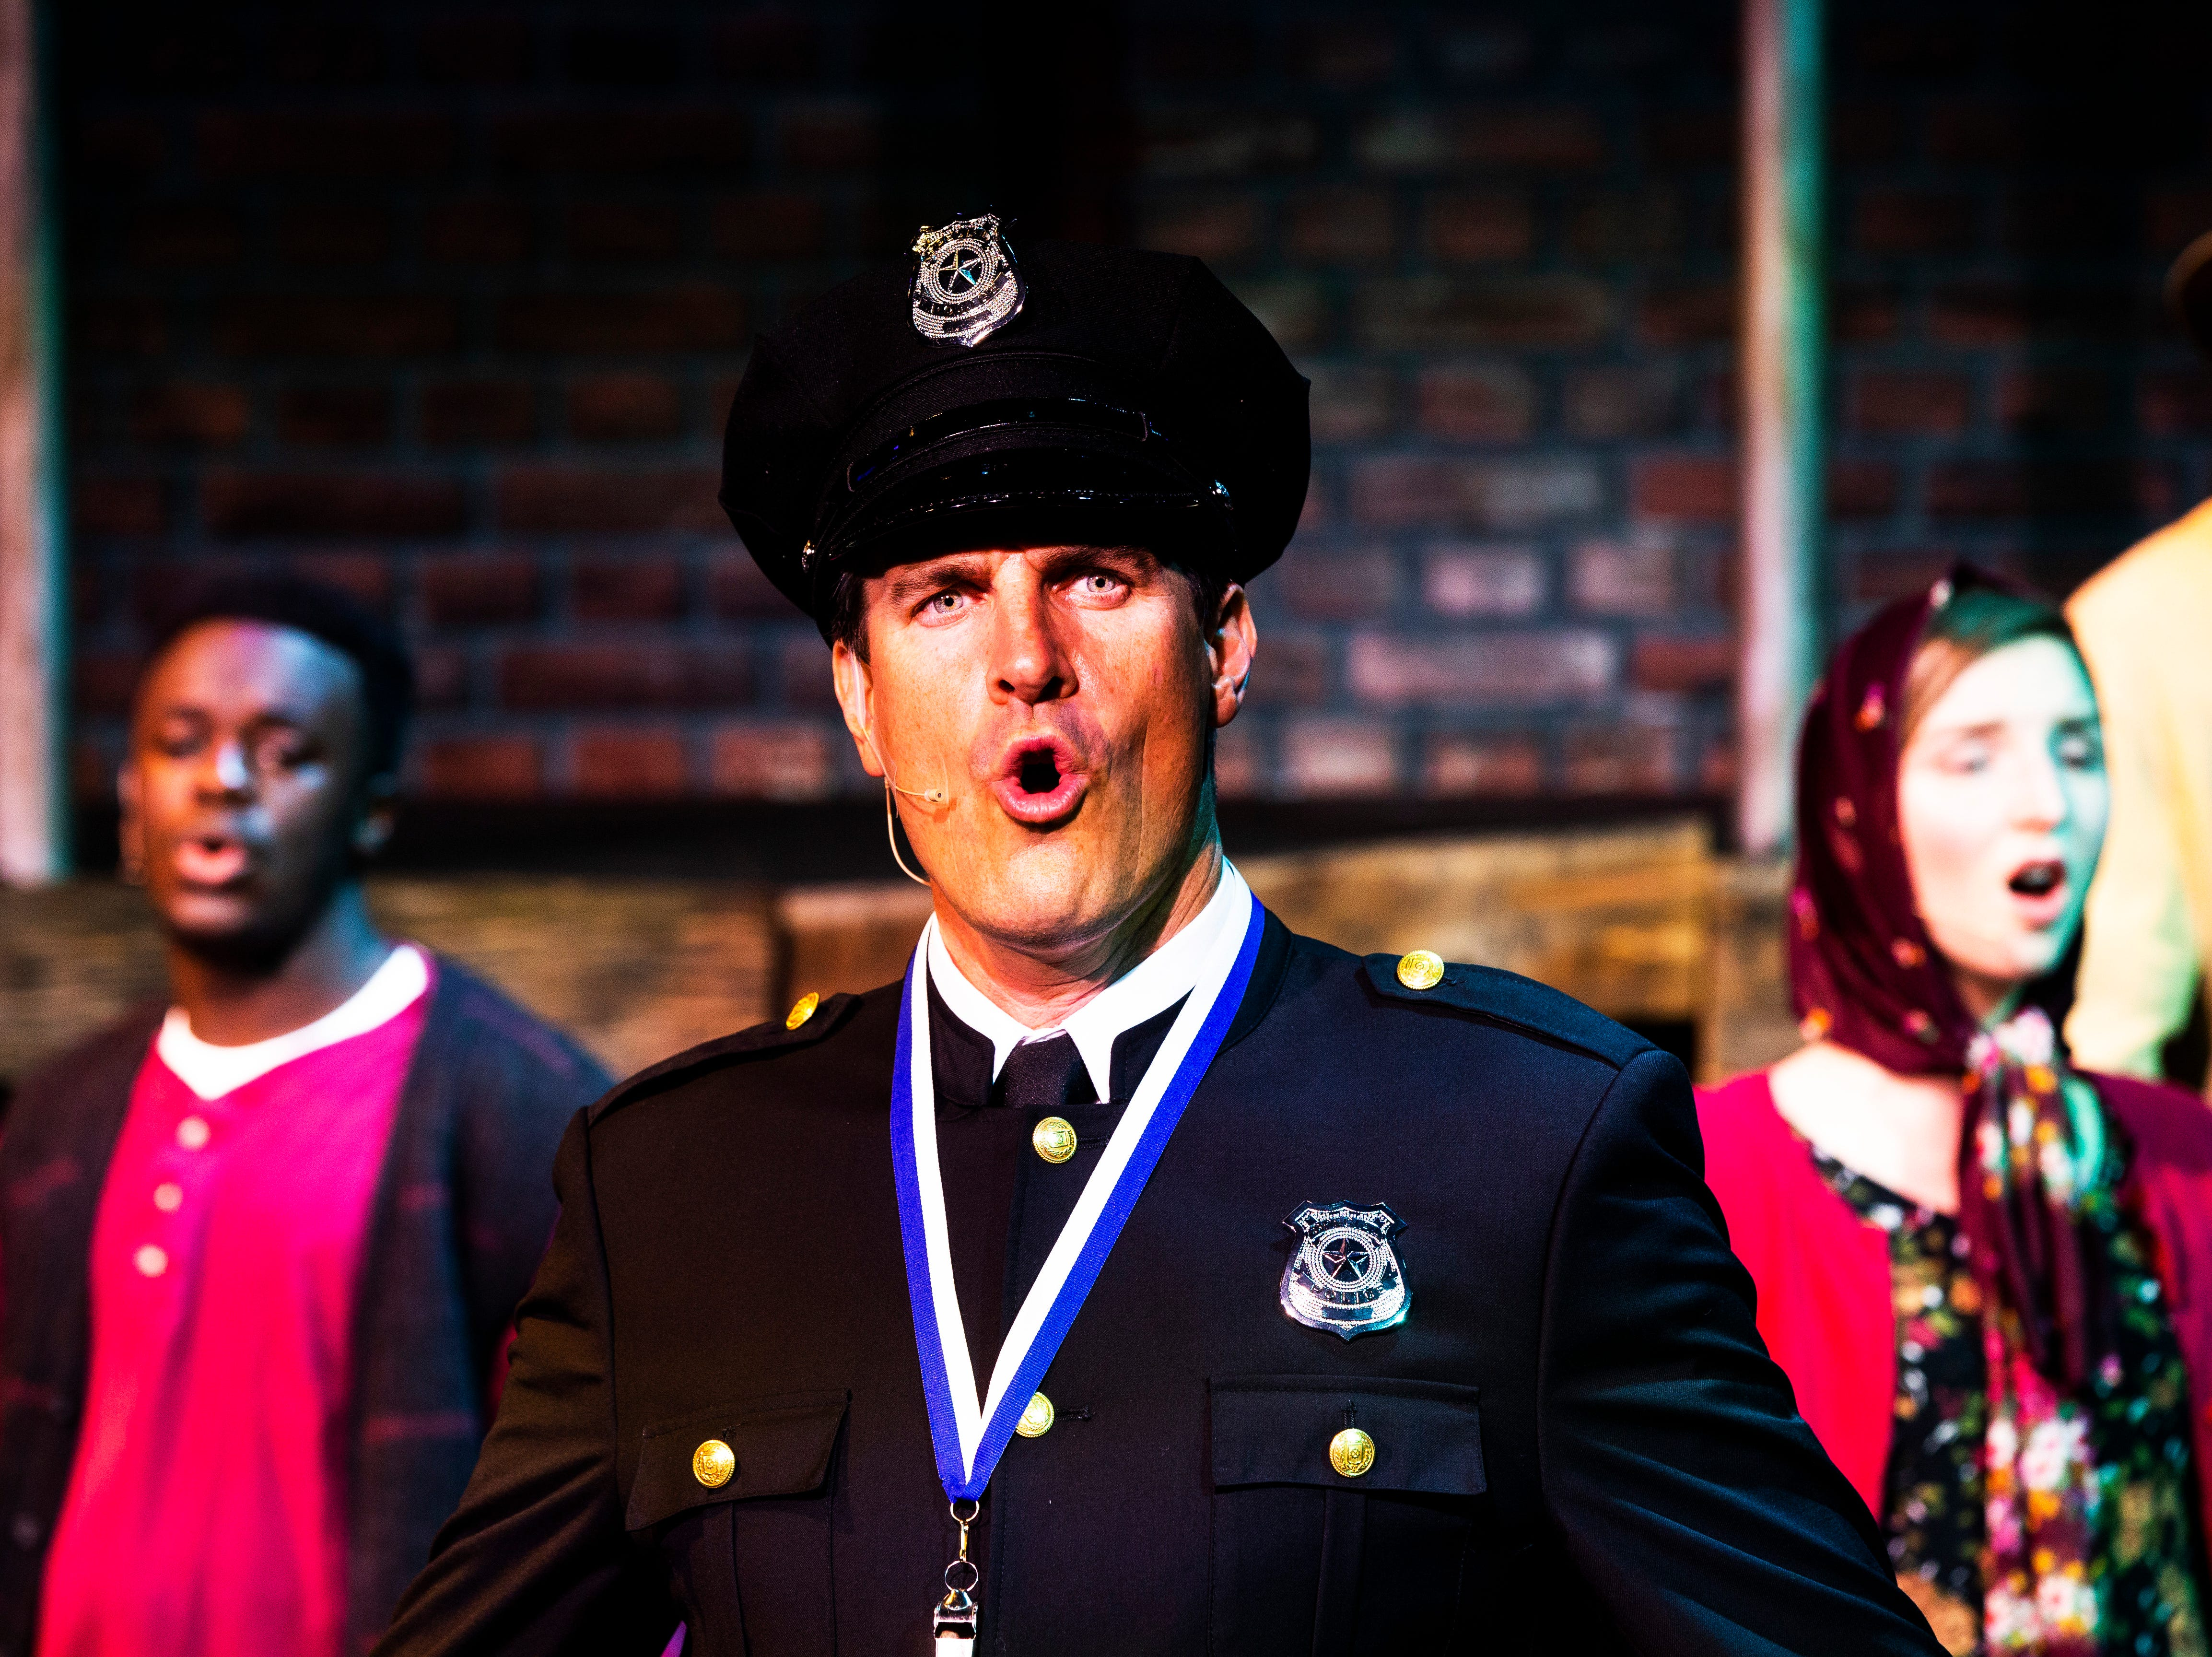 Gerritt VanderMerr, as Officer Lockstock, rehearses for TheatreZone's upcoming production of Urinetown in collaboration with Florida Gulf Coast University in Fort Myers on Monday, Oct. 8, 2018. Urinetown is a hilarious musical satire of the legal system, capitalism, social irresponsibility, populism, bureaucracy, corporate mismanagement, municipal politics and musical theatre itself.